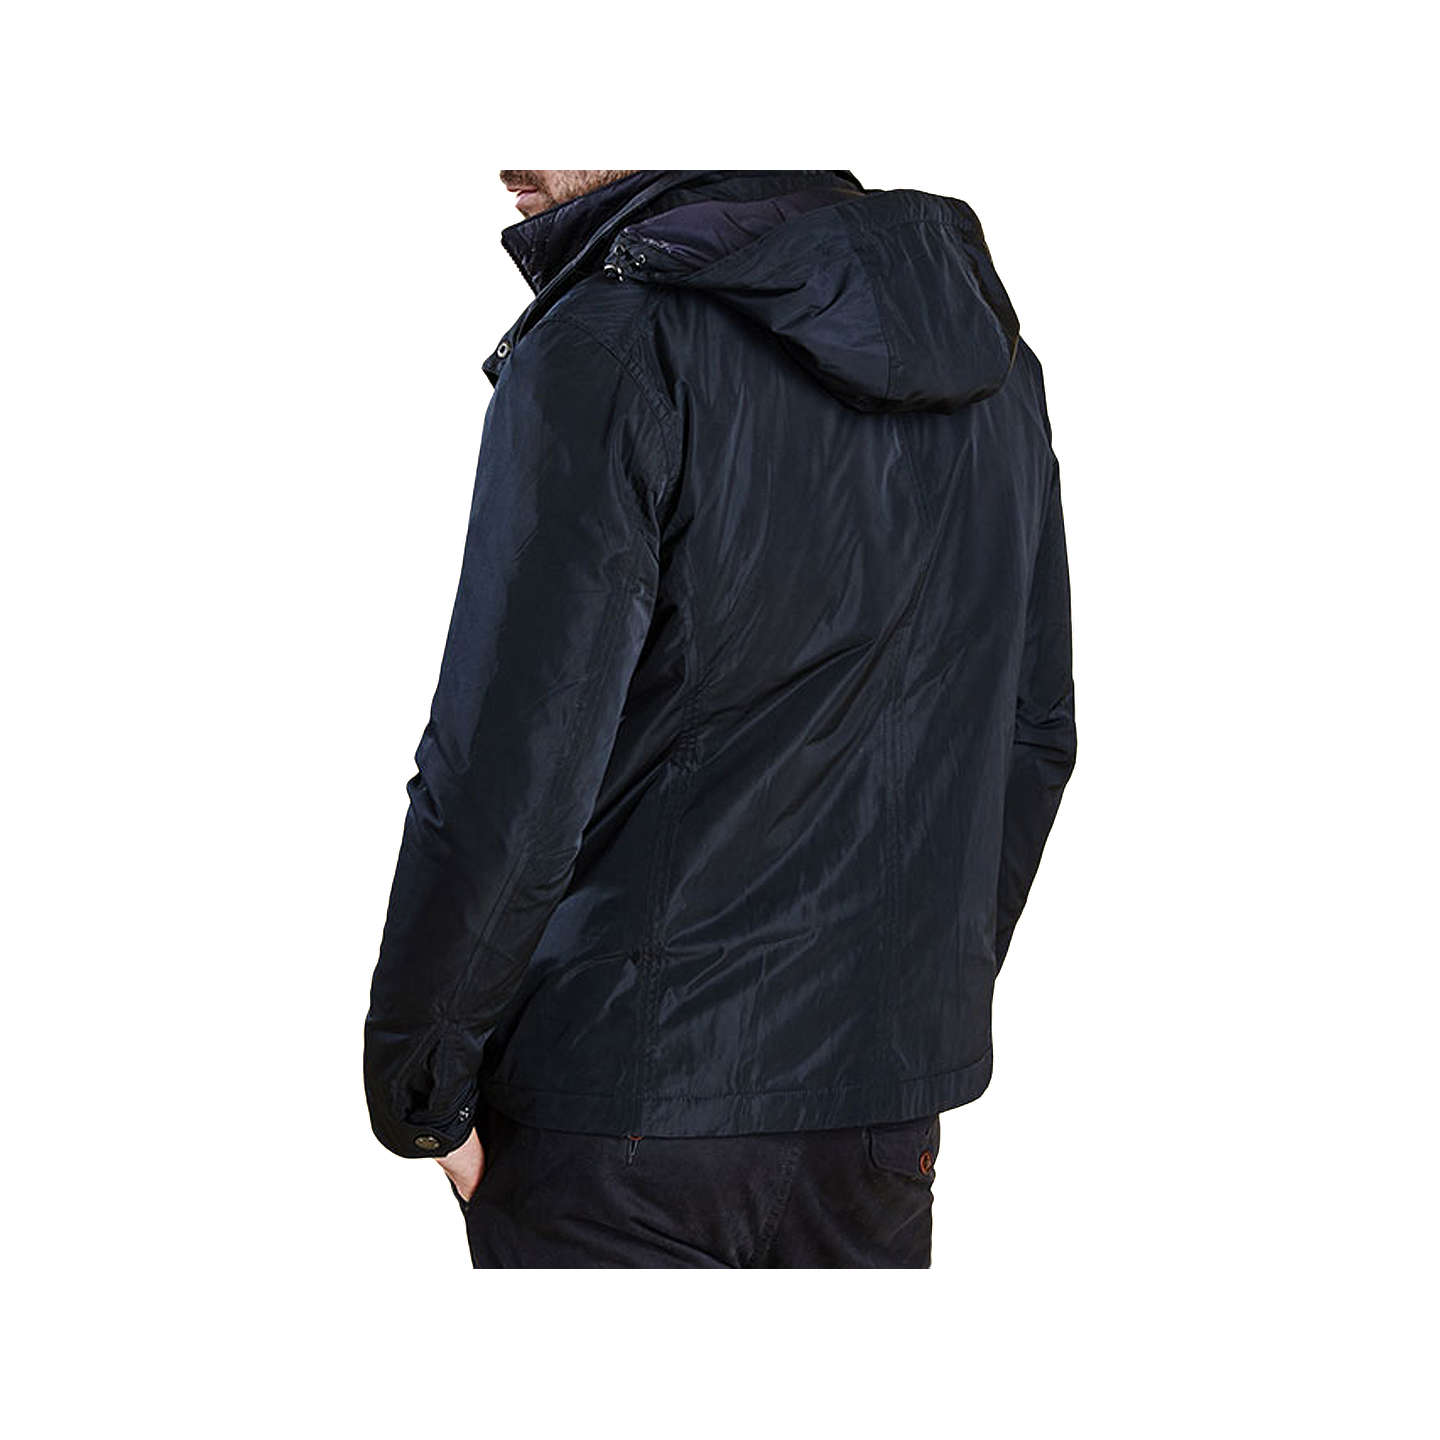 BuyBarbour Tulloch Waterproof Jacket, Navy, S Online at johnlewis.com